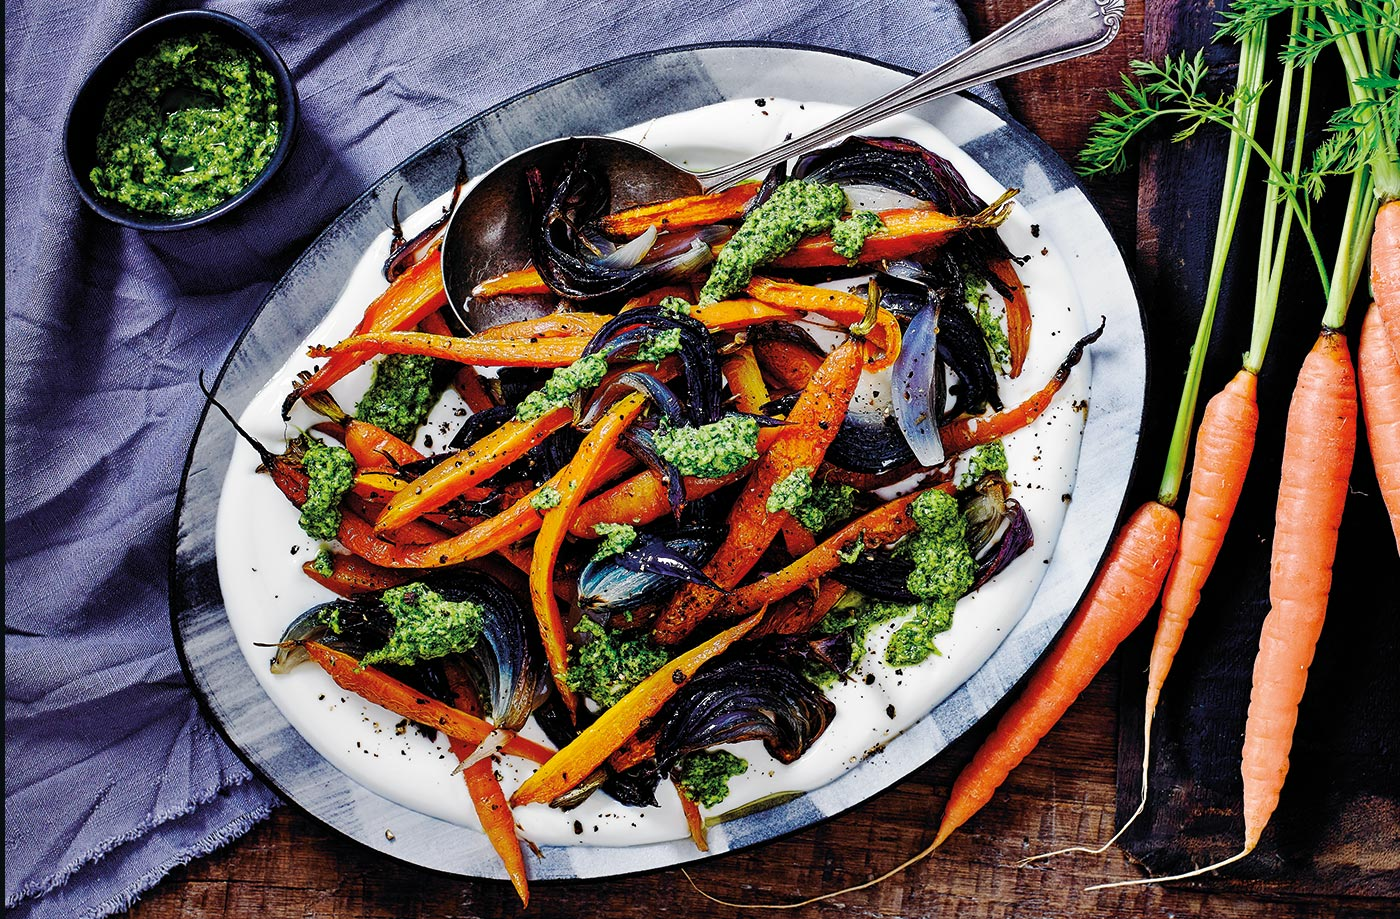 Roasted carrots with coriander pesto recipe